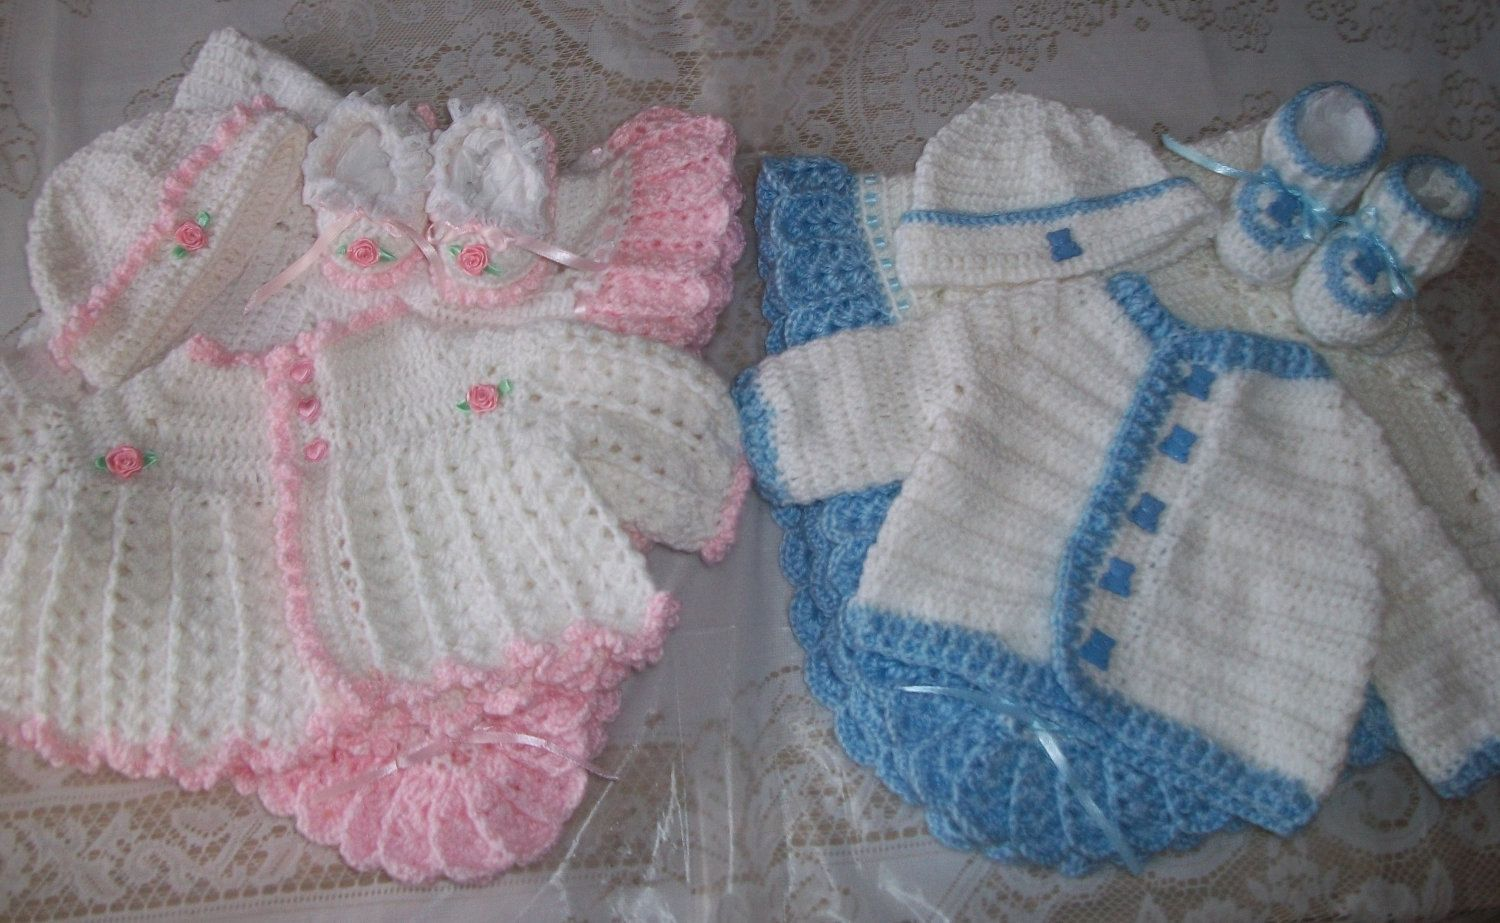 898a2367c Free Crochet Pattern For Baby Layette Sets   Boy Girl Twins Sweater ...